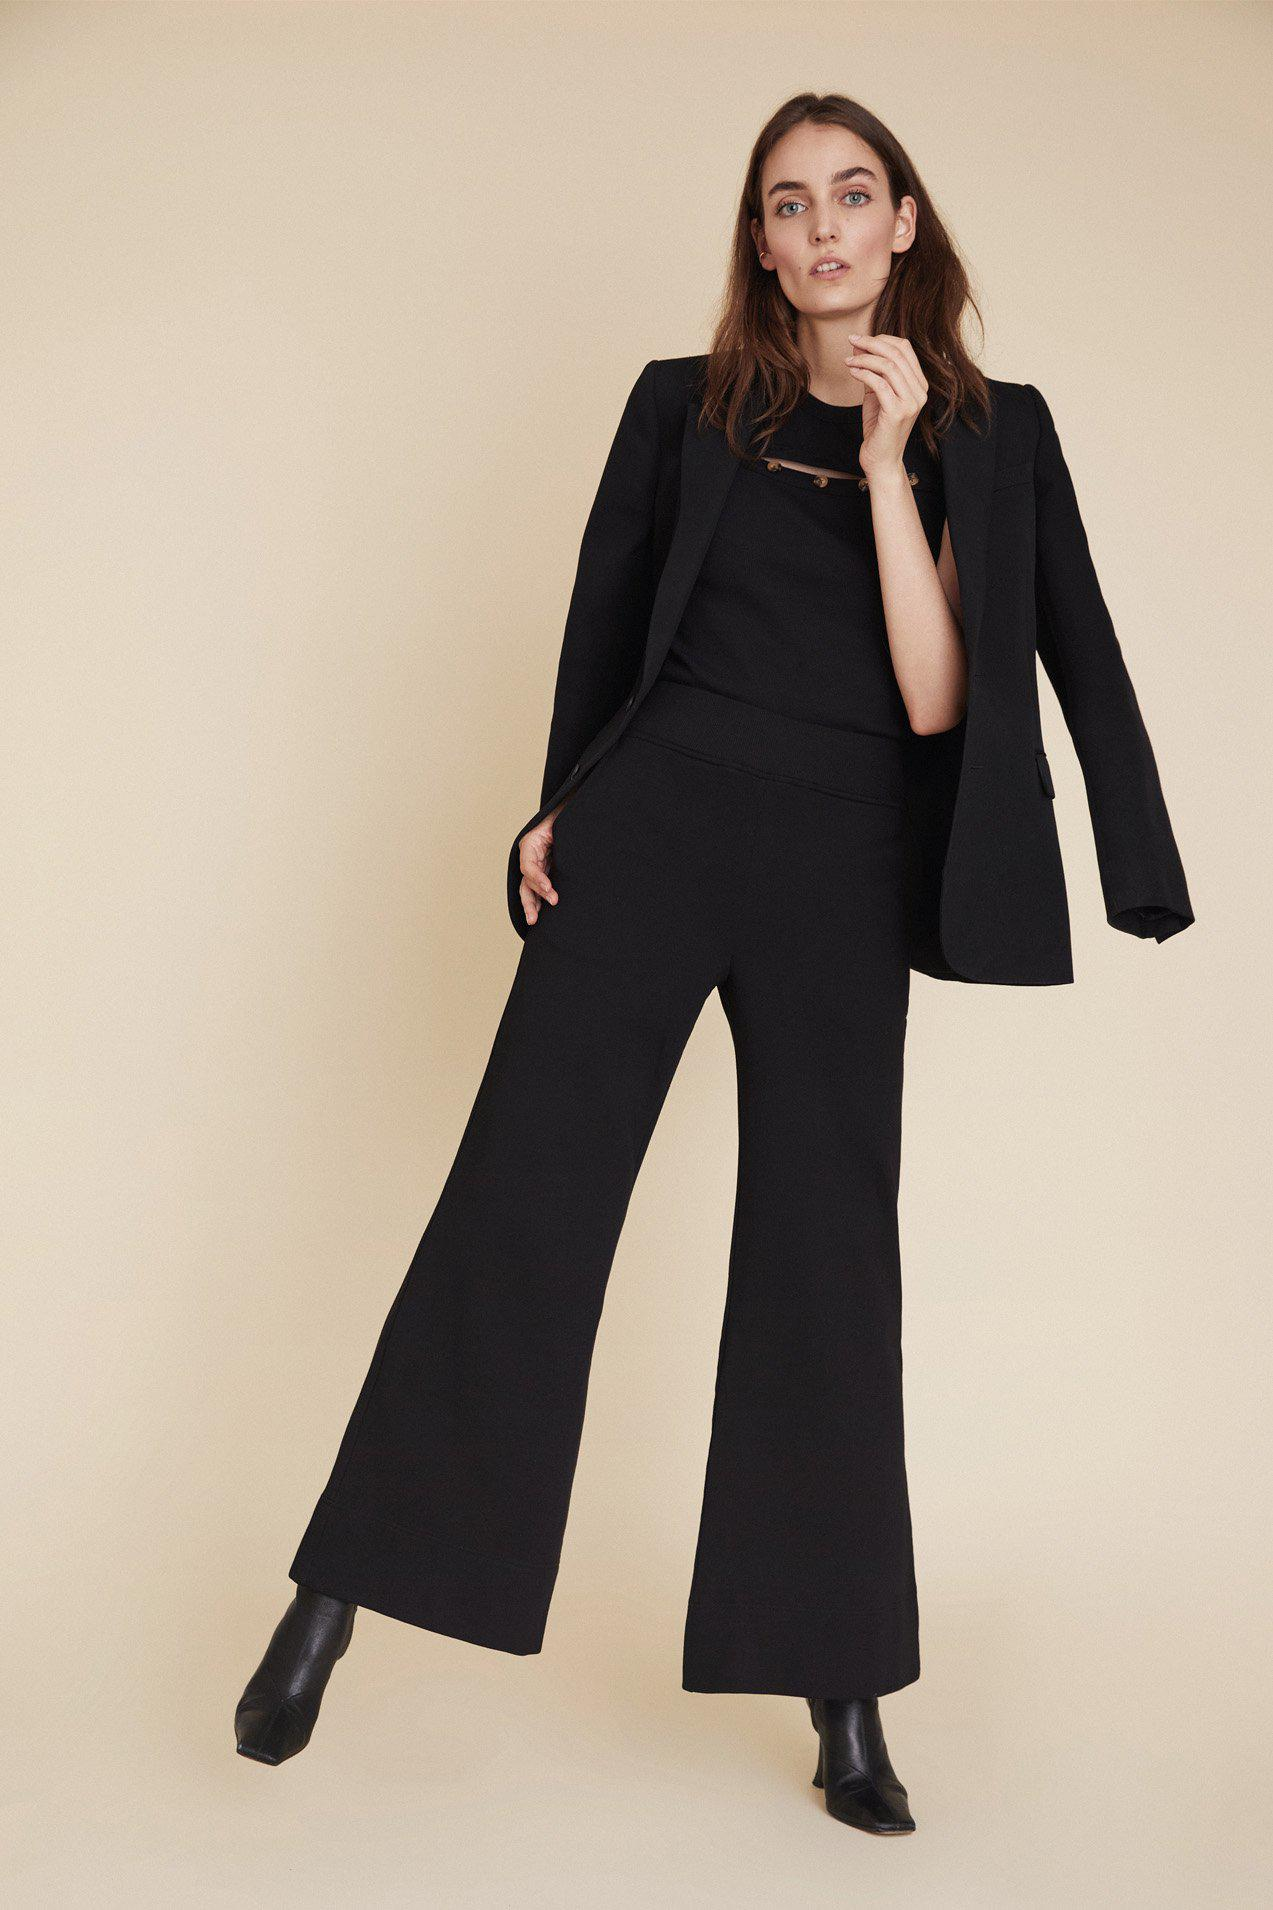 The Go Big Or Go Home Pant